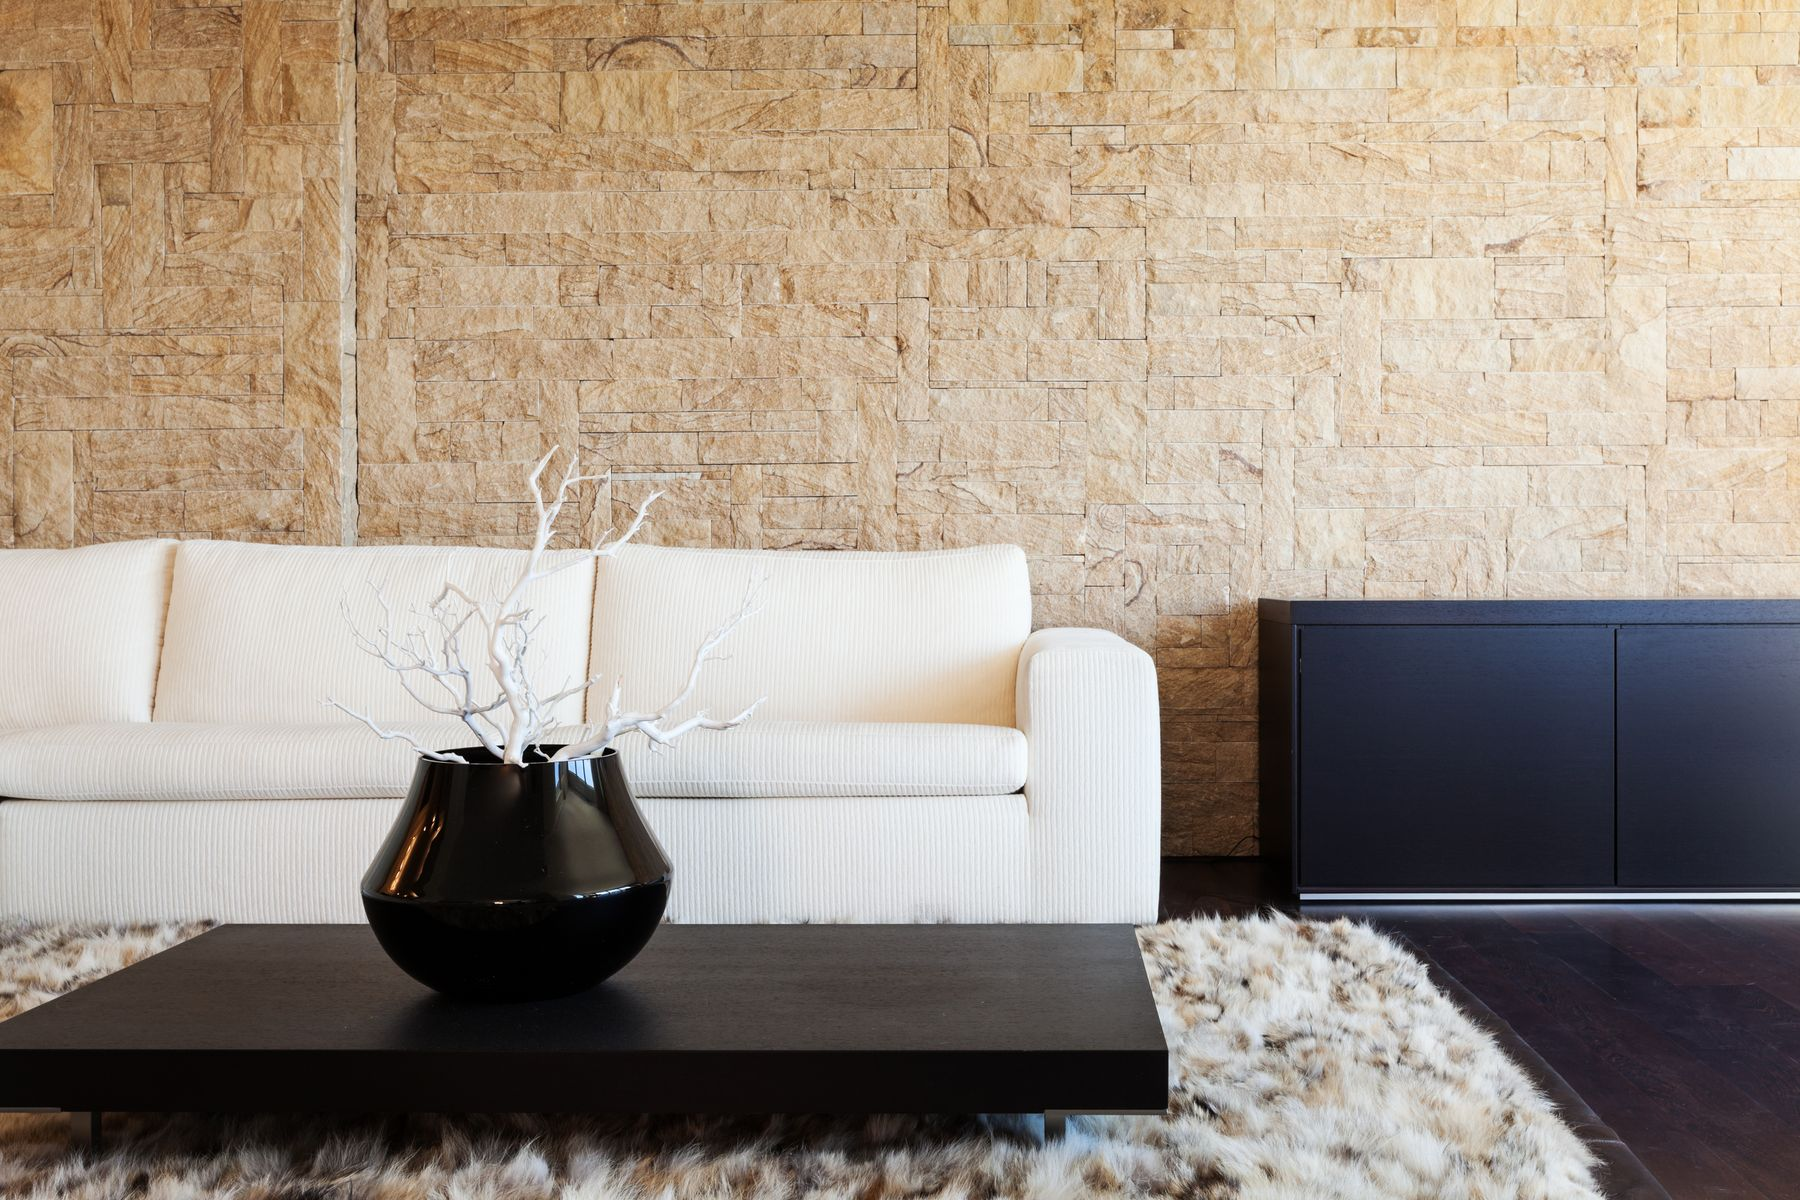 How to Clean Oil Stains from Your Stone Walls